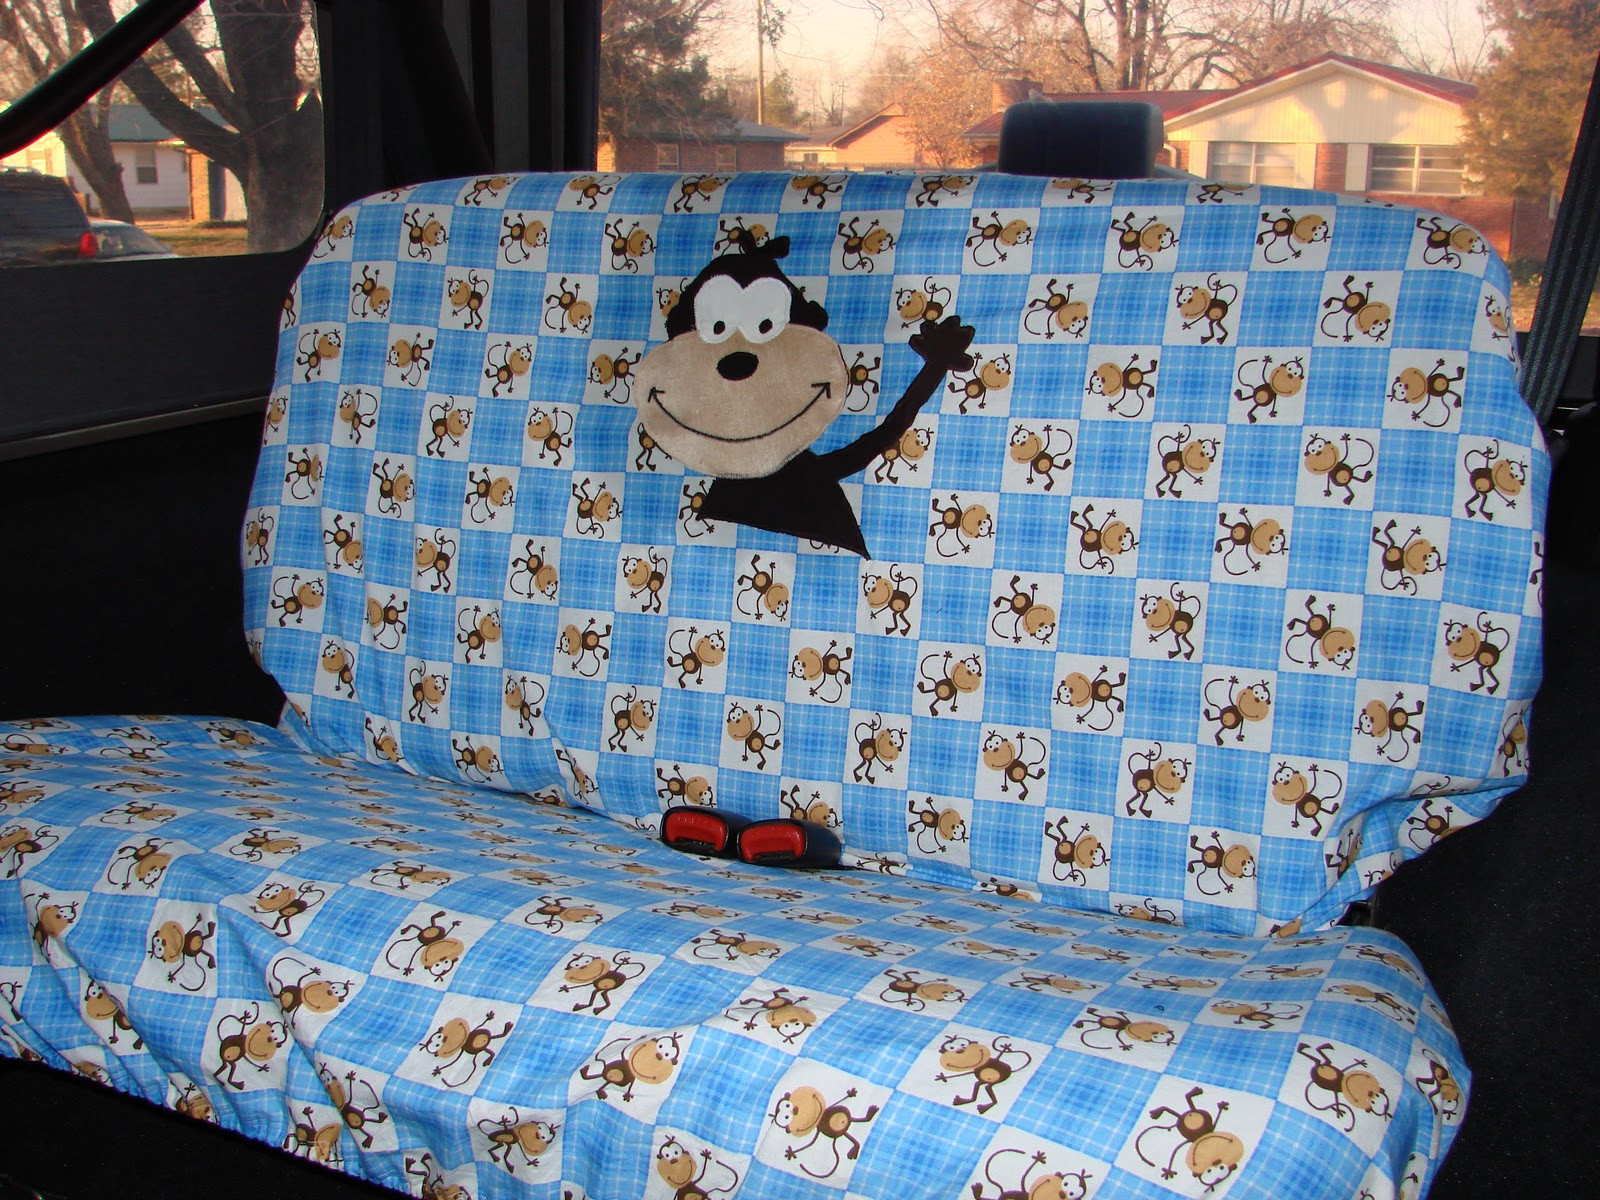 Best ideas about DIY Seat Covers . Save or Pin modestmaiden62 DIY seat cover for our new Jeep Now.